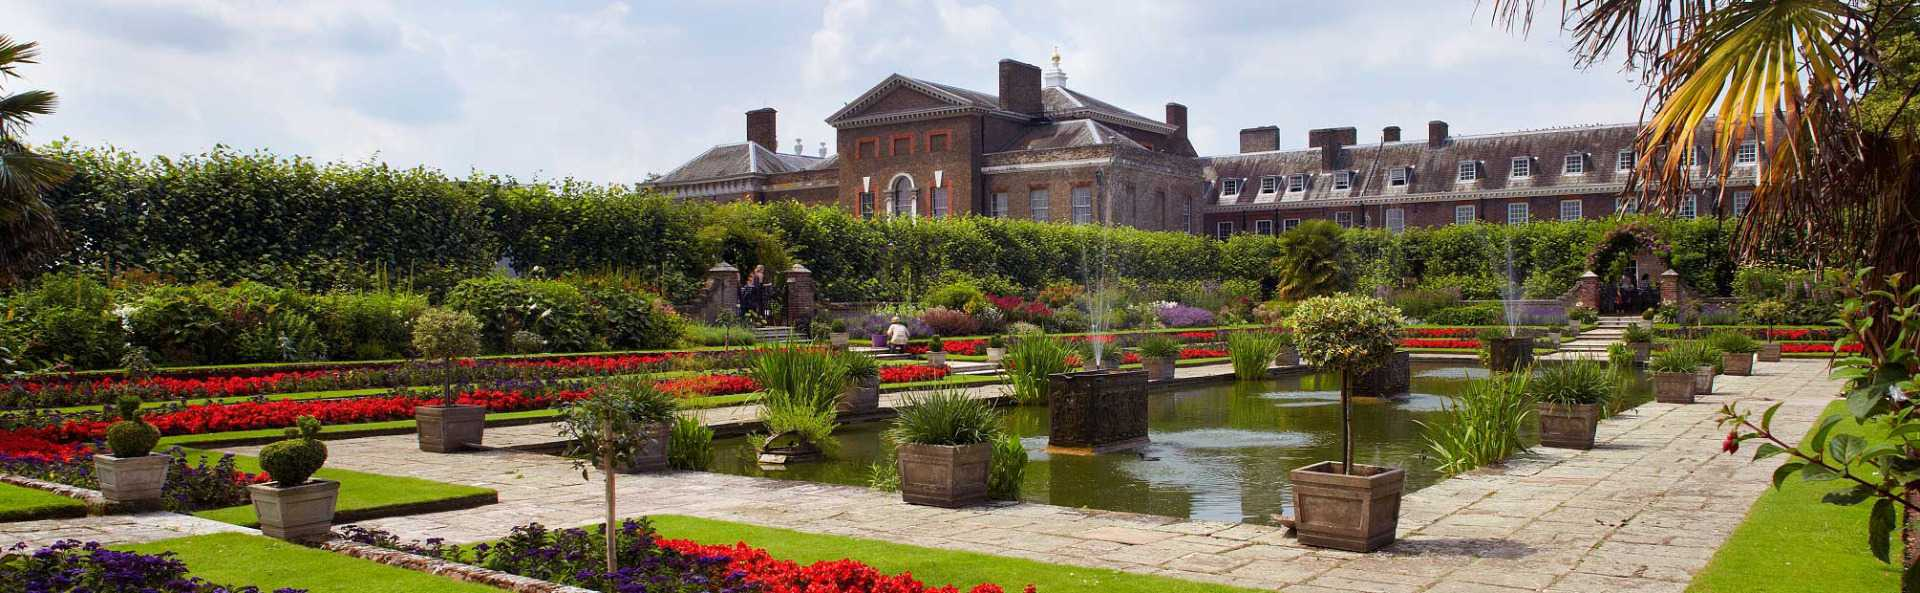 Kensington Palace Gardens Outside